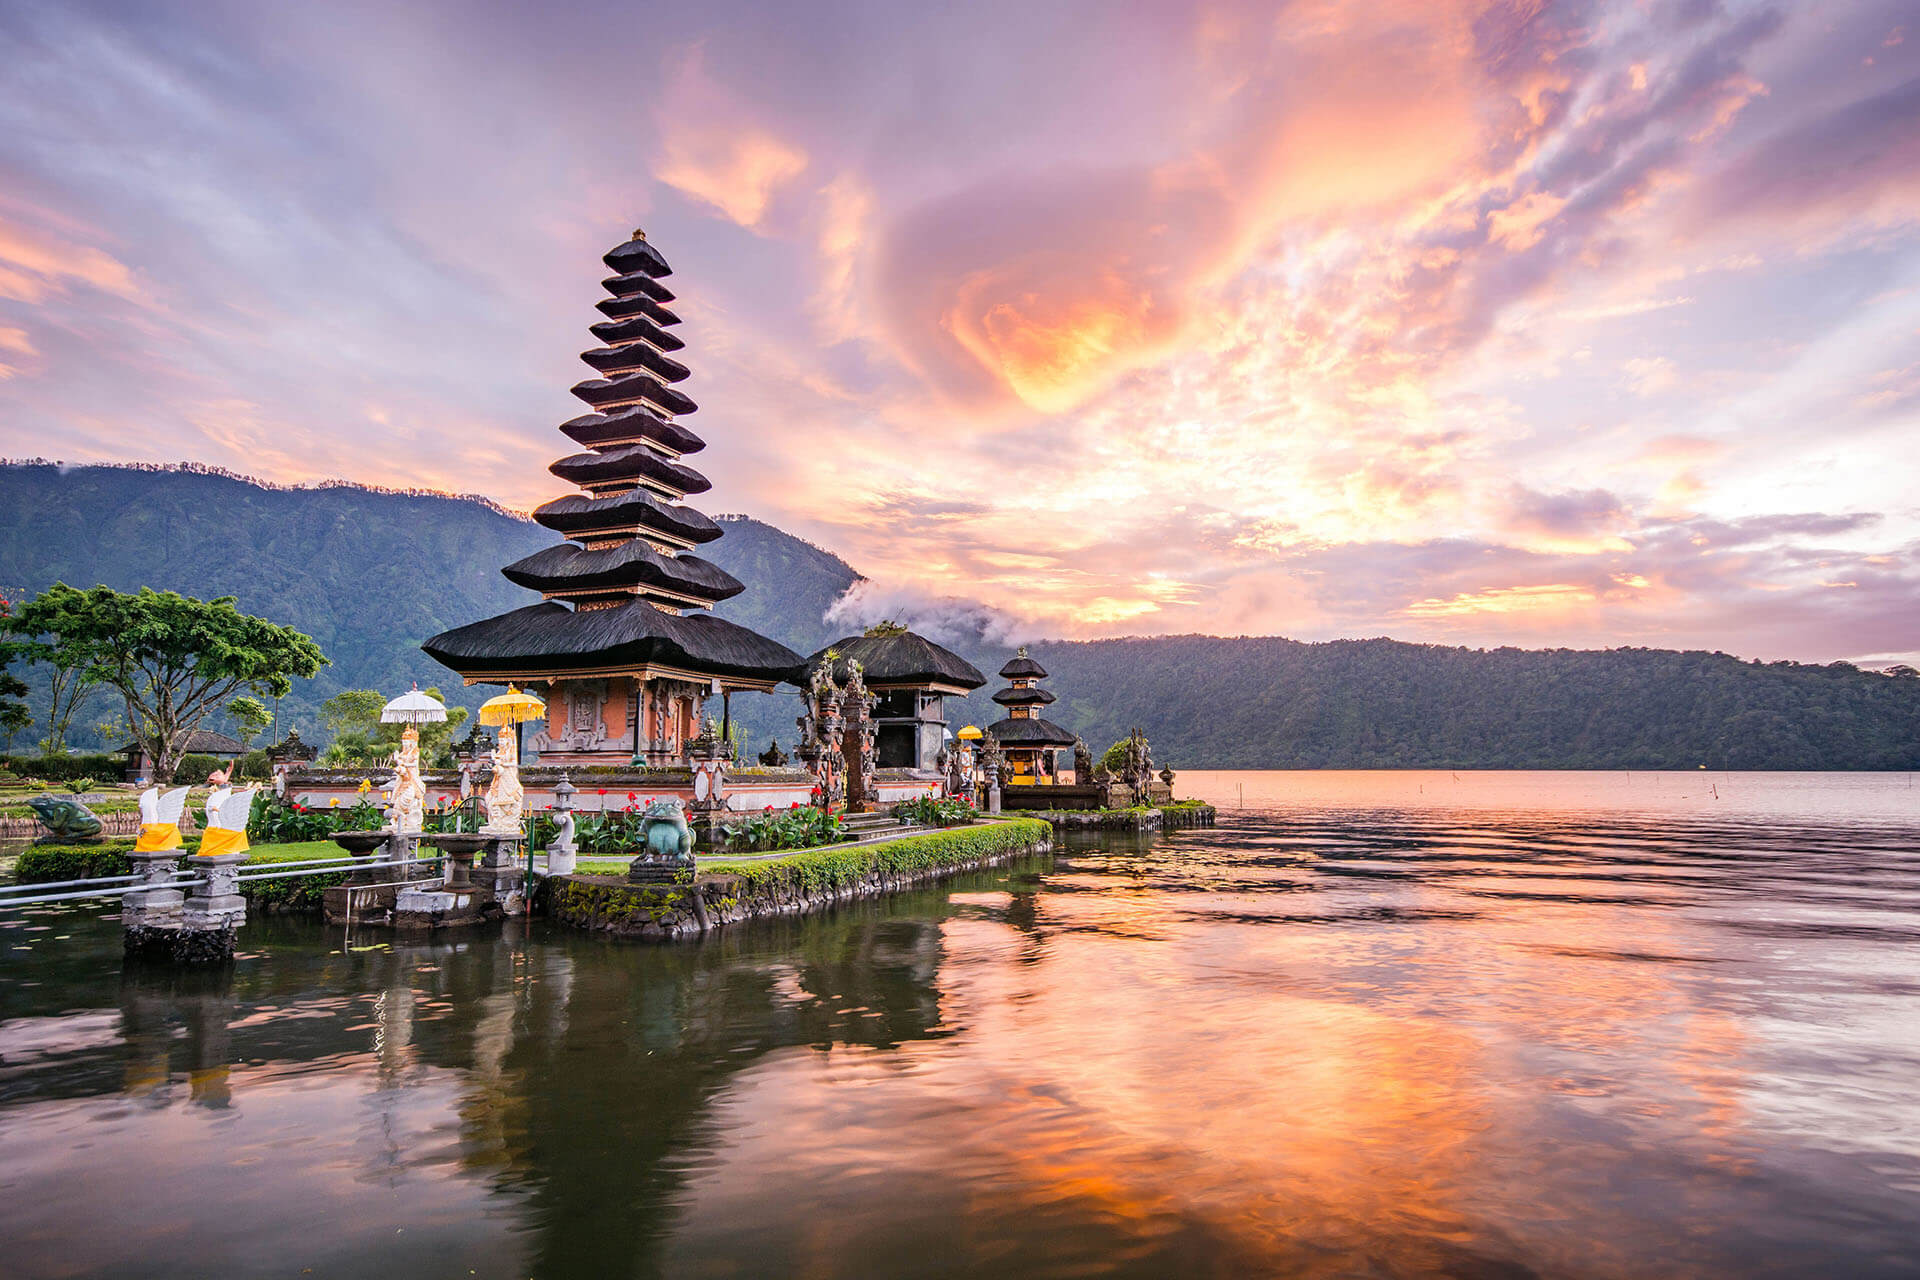 Indonesia: Partial Lifting of International Travel Ban for Foreigners